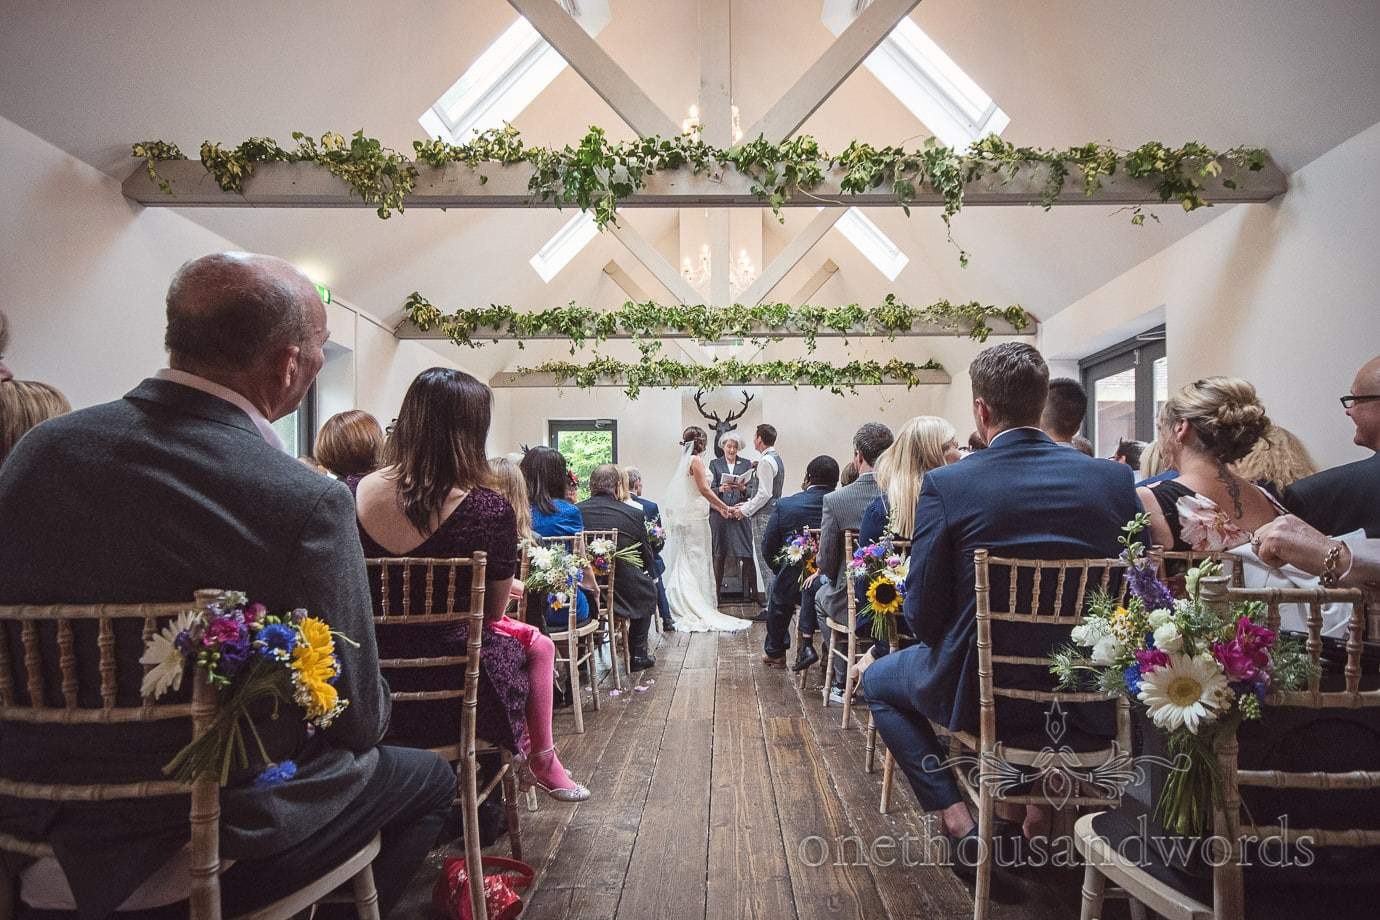 The Orangery wedding ceremony at The Old Vicarage Wedding venue in New Forest